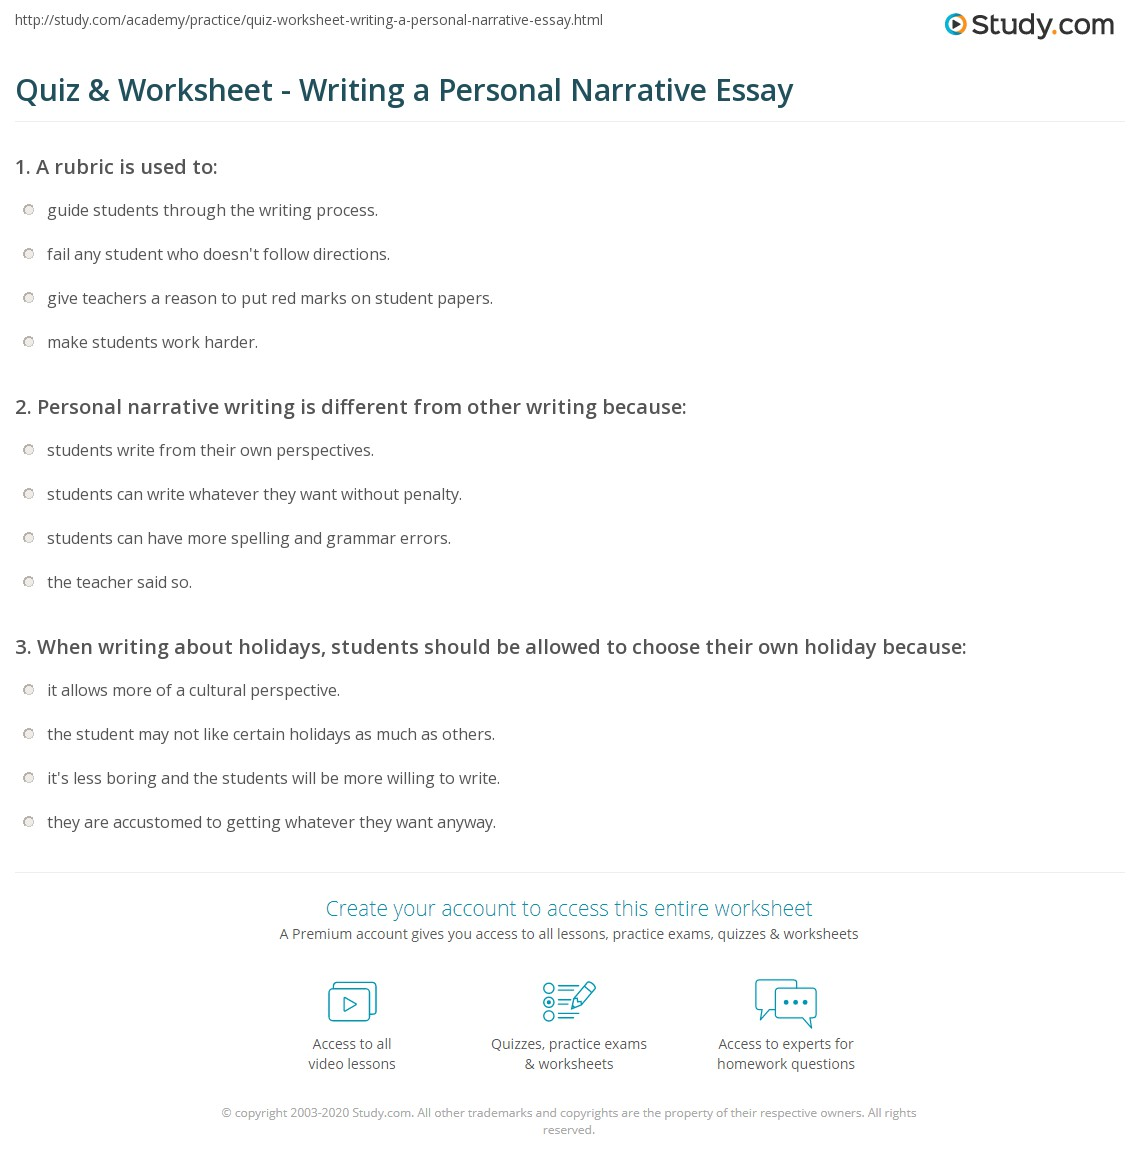 How to Write a Personal Narrative?